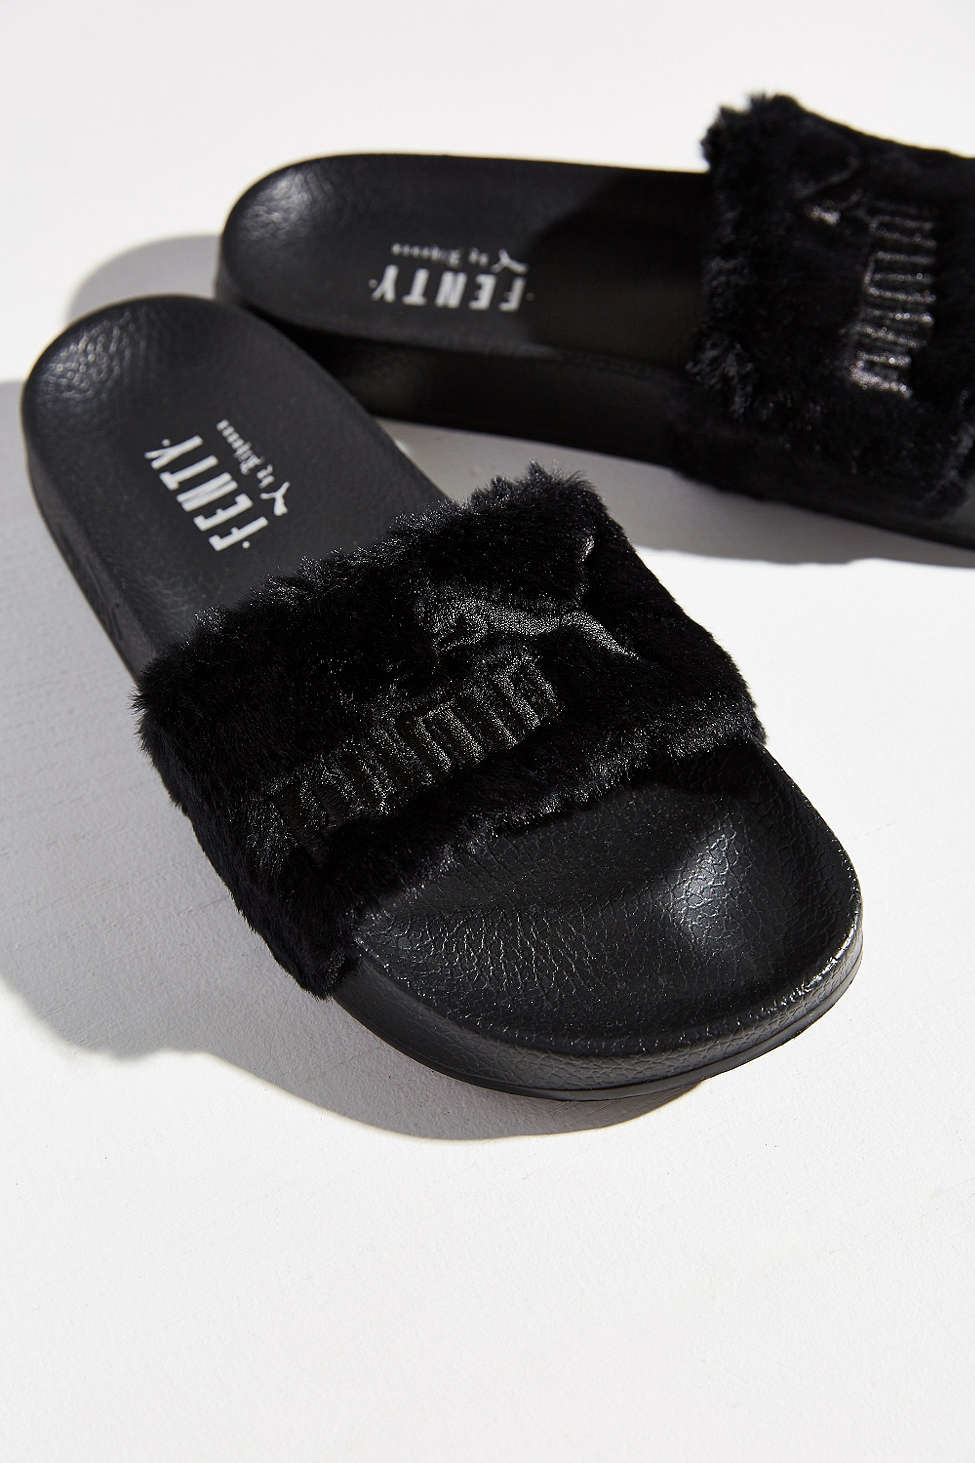 buy popular c5a8d d3e7a spain puma slippers black fur 04d61 dd60f